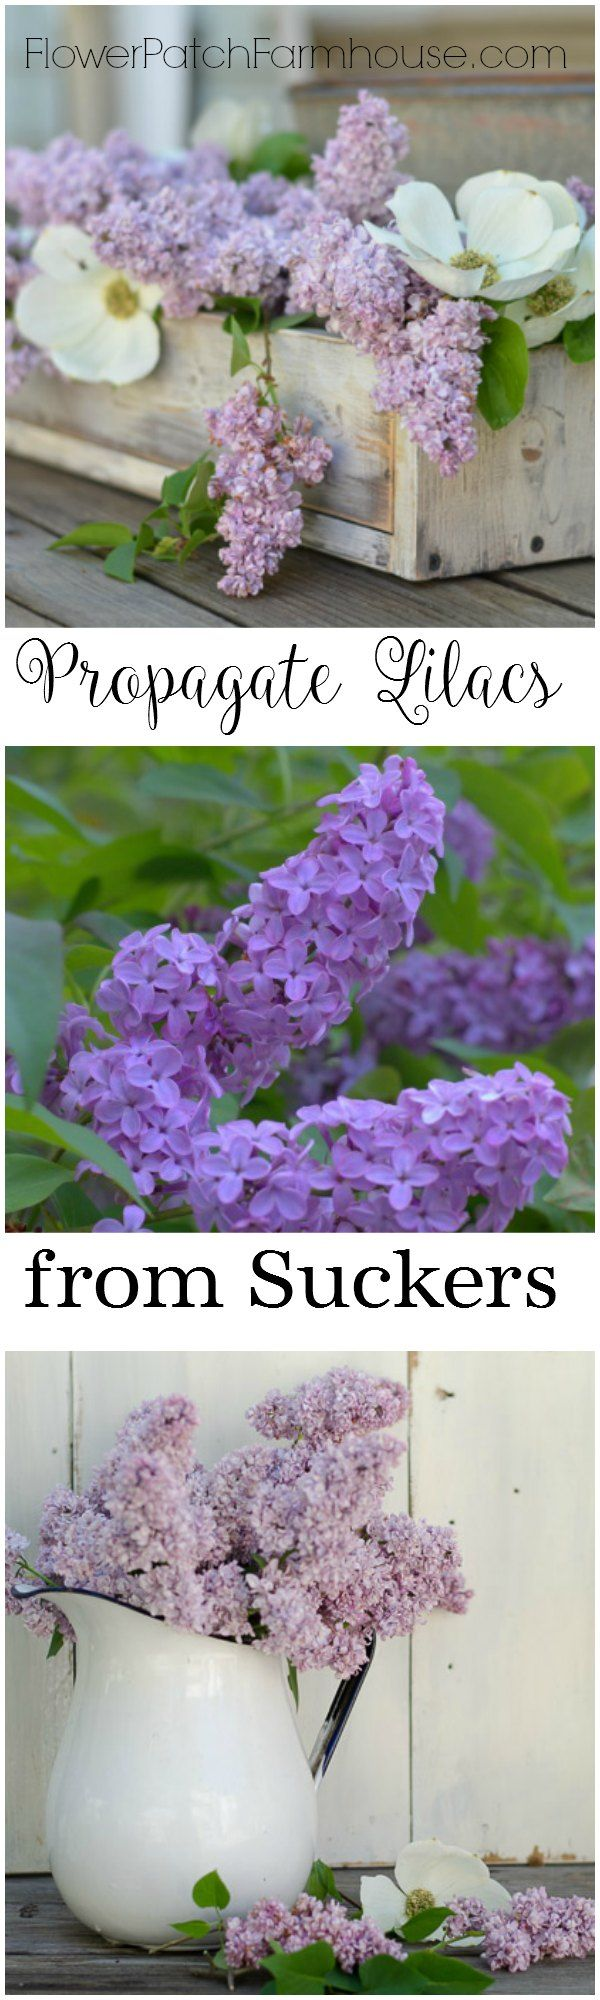 Propagate Lilacs from Suckers - Flower Patch Farmhouse